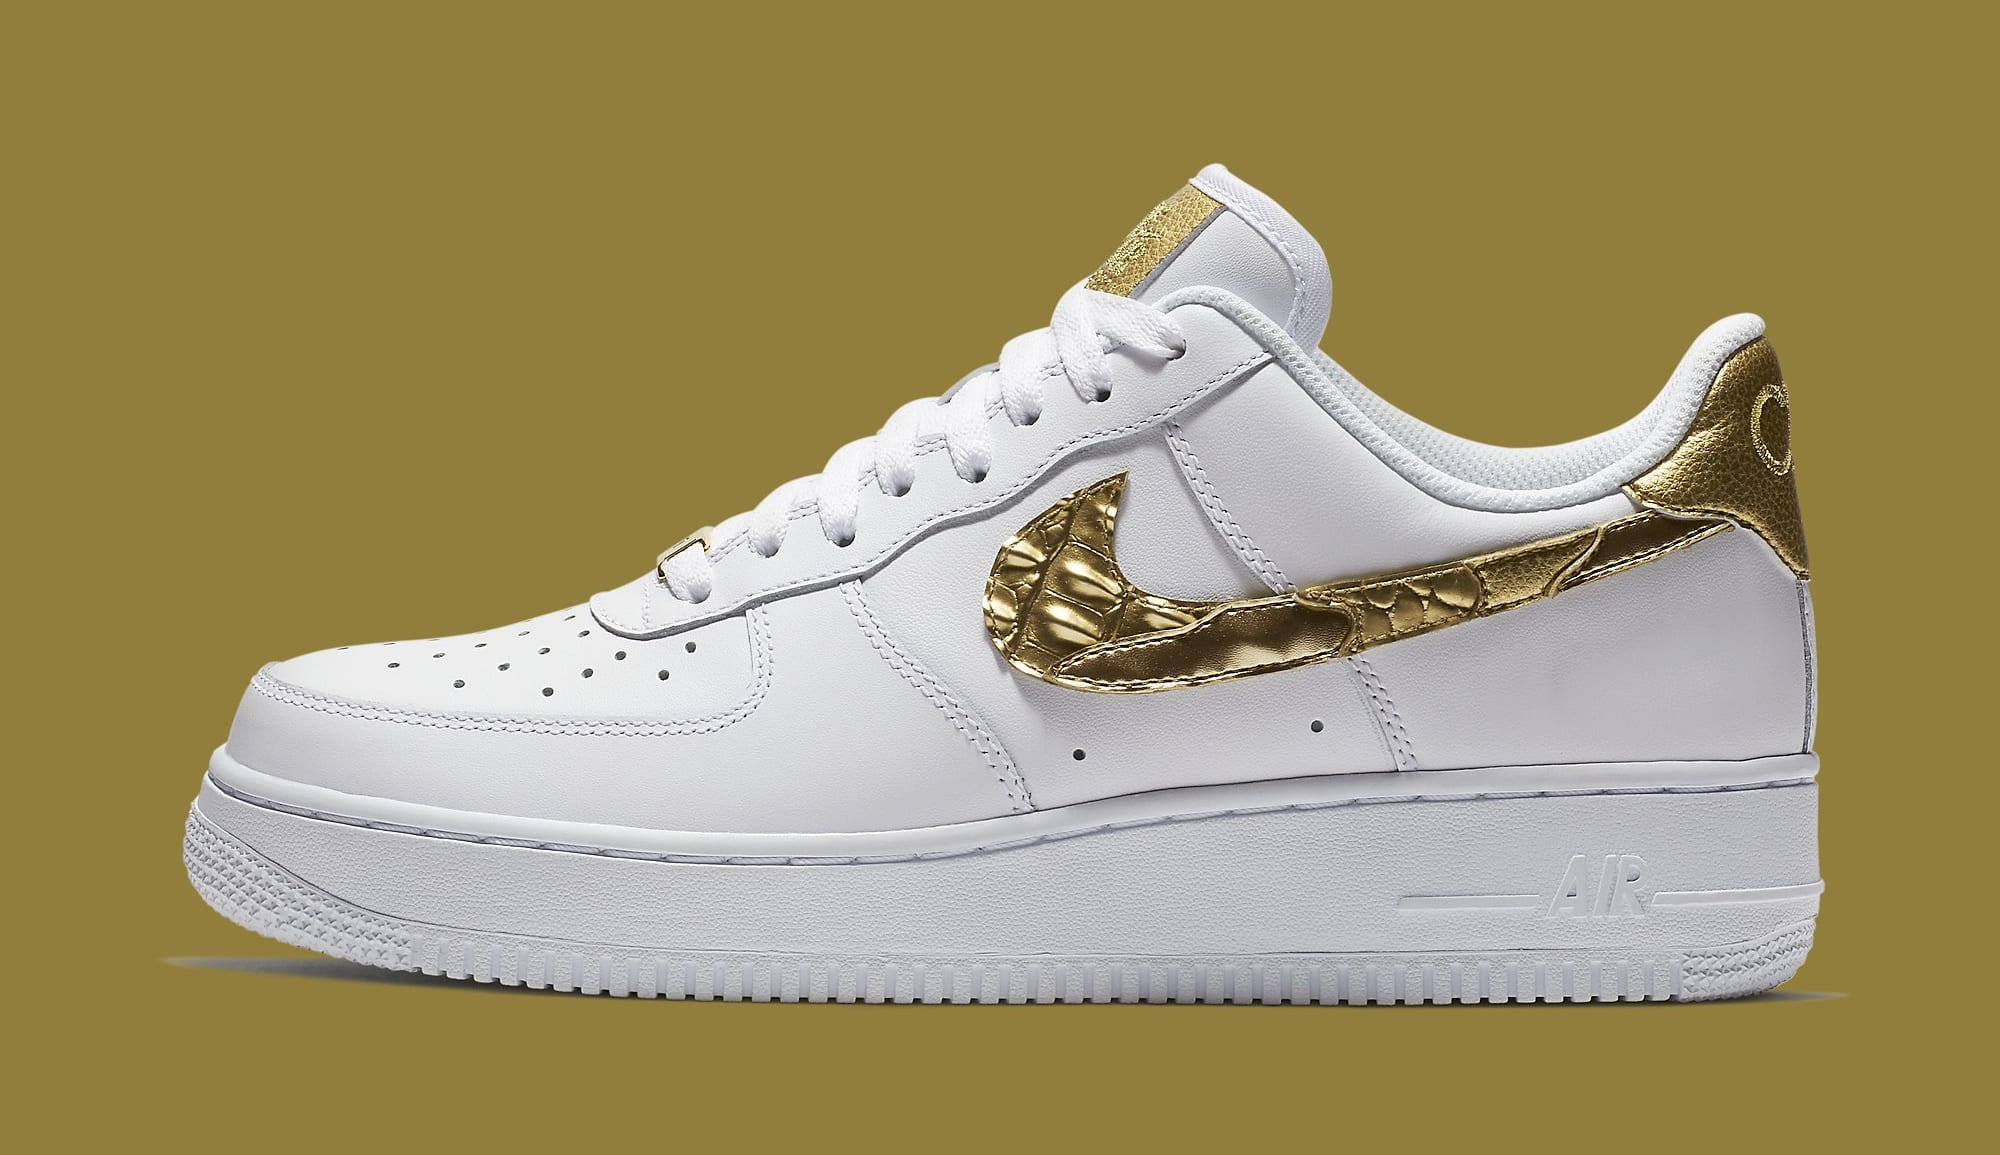 imagina Ambientalista Gastos de envío  Nike Air Force 1s Inspired Cristiano Ronaldo Childhood | Sole Collector